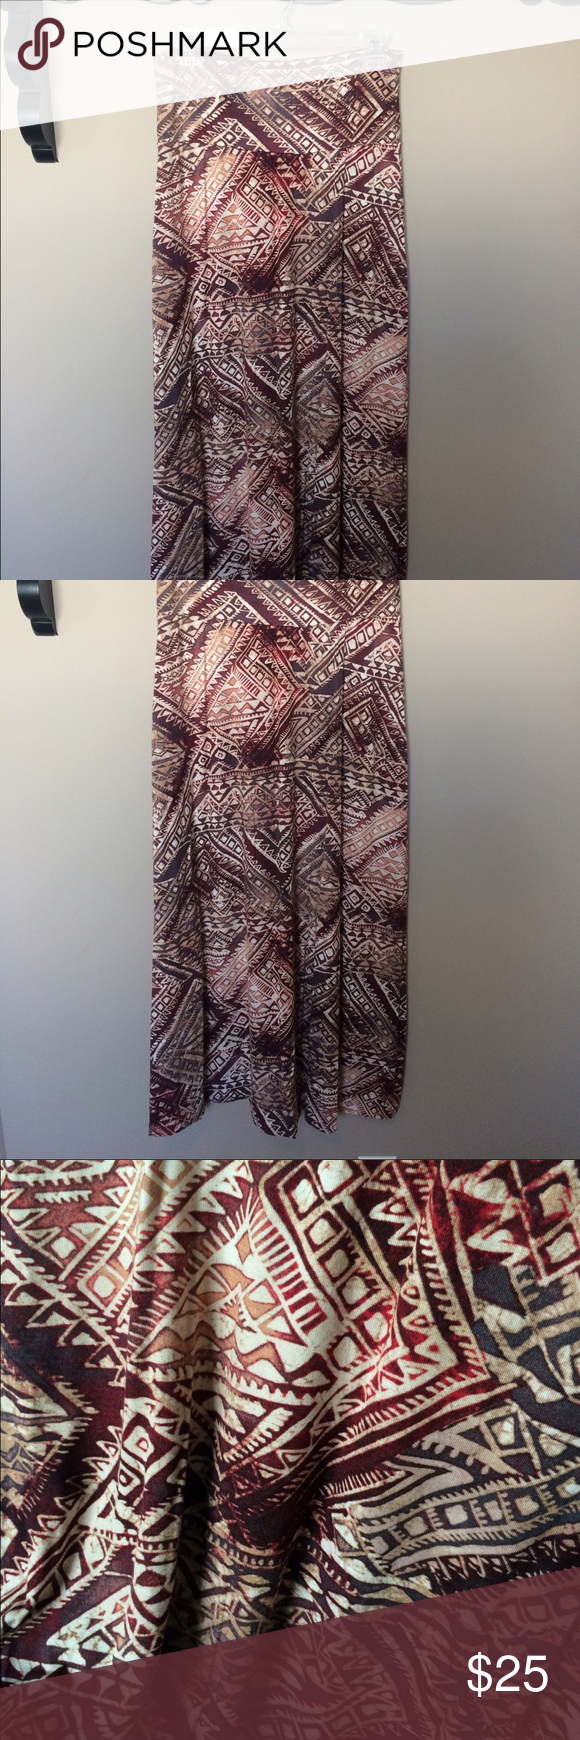 ✨SALE✨ DOWNEAST AZTEC MAXI SKIRT ✨$5 off✨was $25✨   Such a pretty pattern with great colors! Brand new, NEVER been worn. Fits exactly as you'd expect a maxi skirt too. And also made out of soft stretchy fabric. Downeast Skirts Maxi